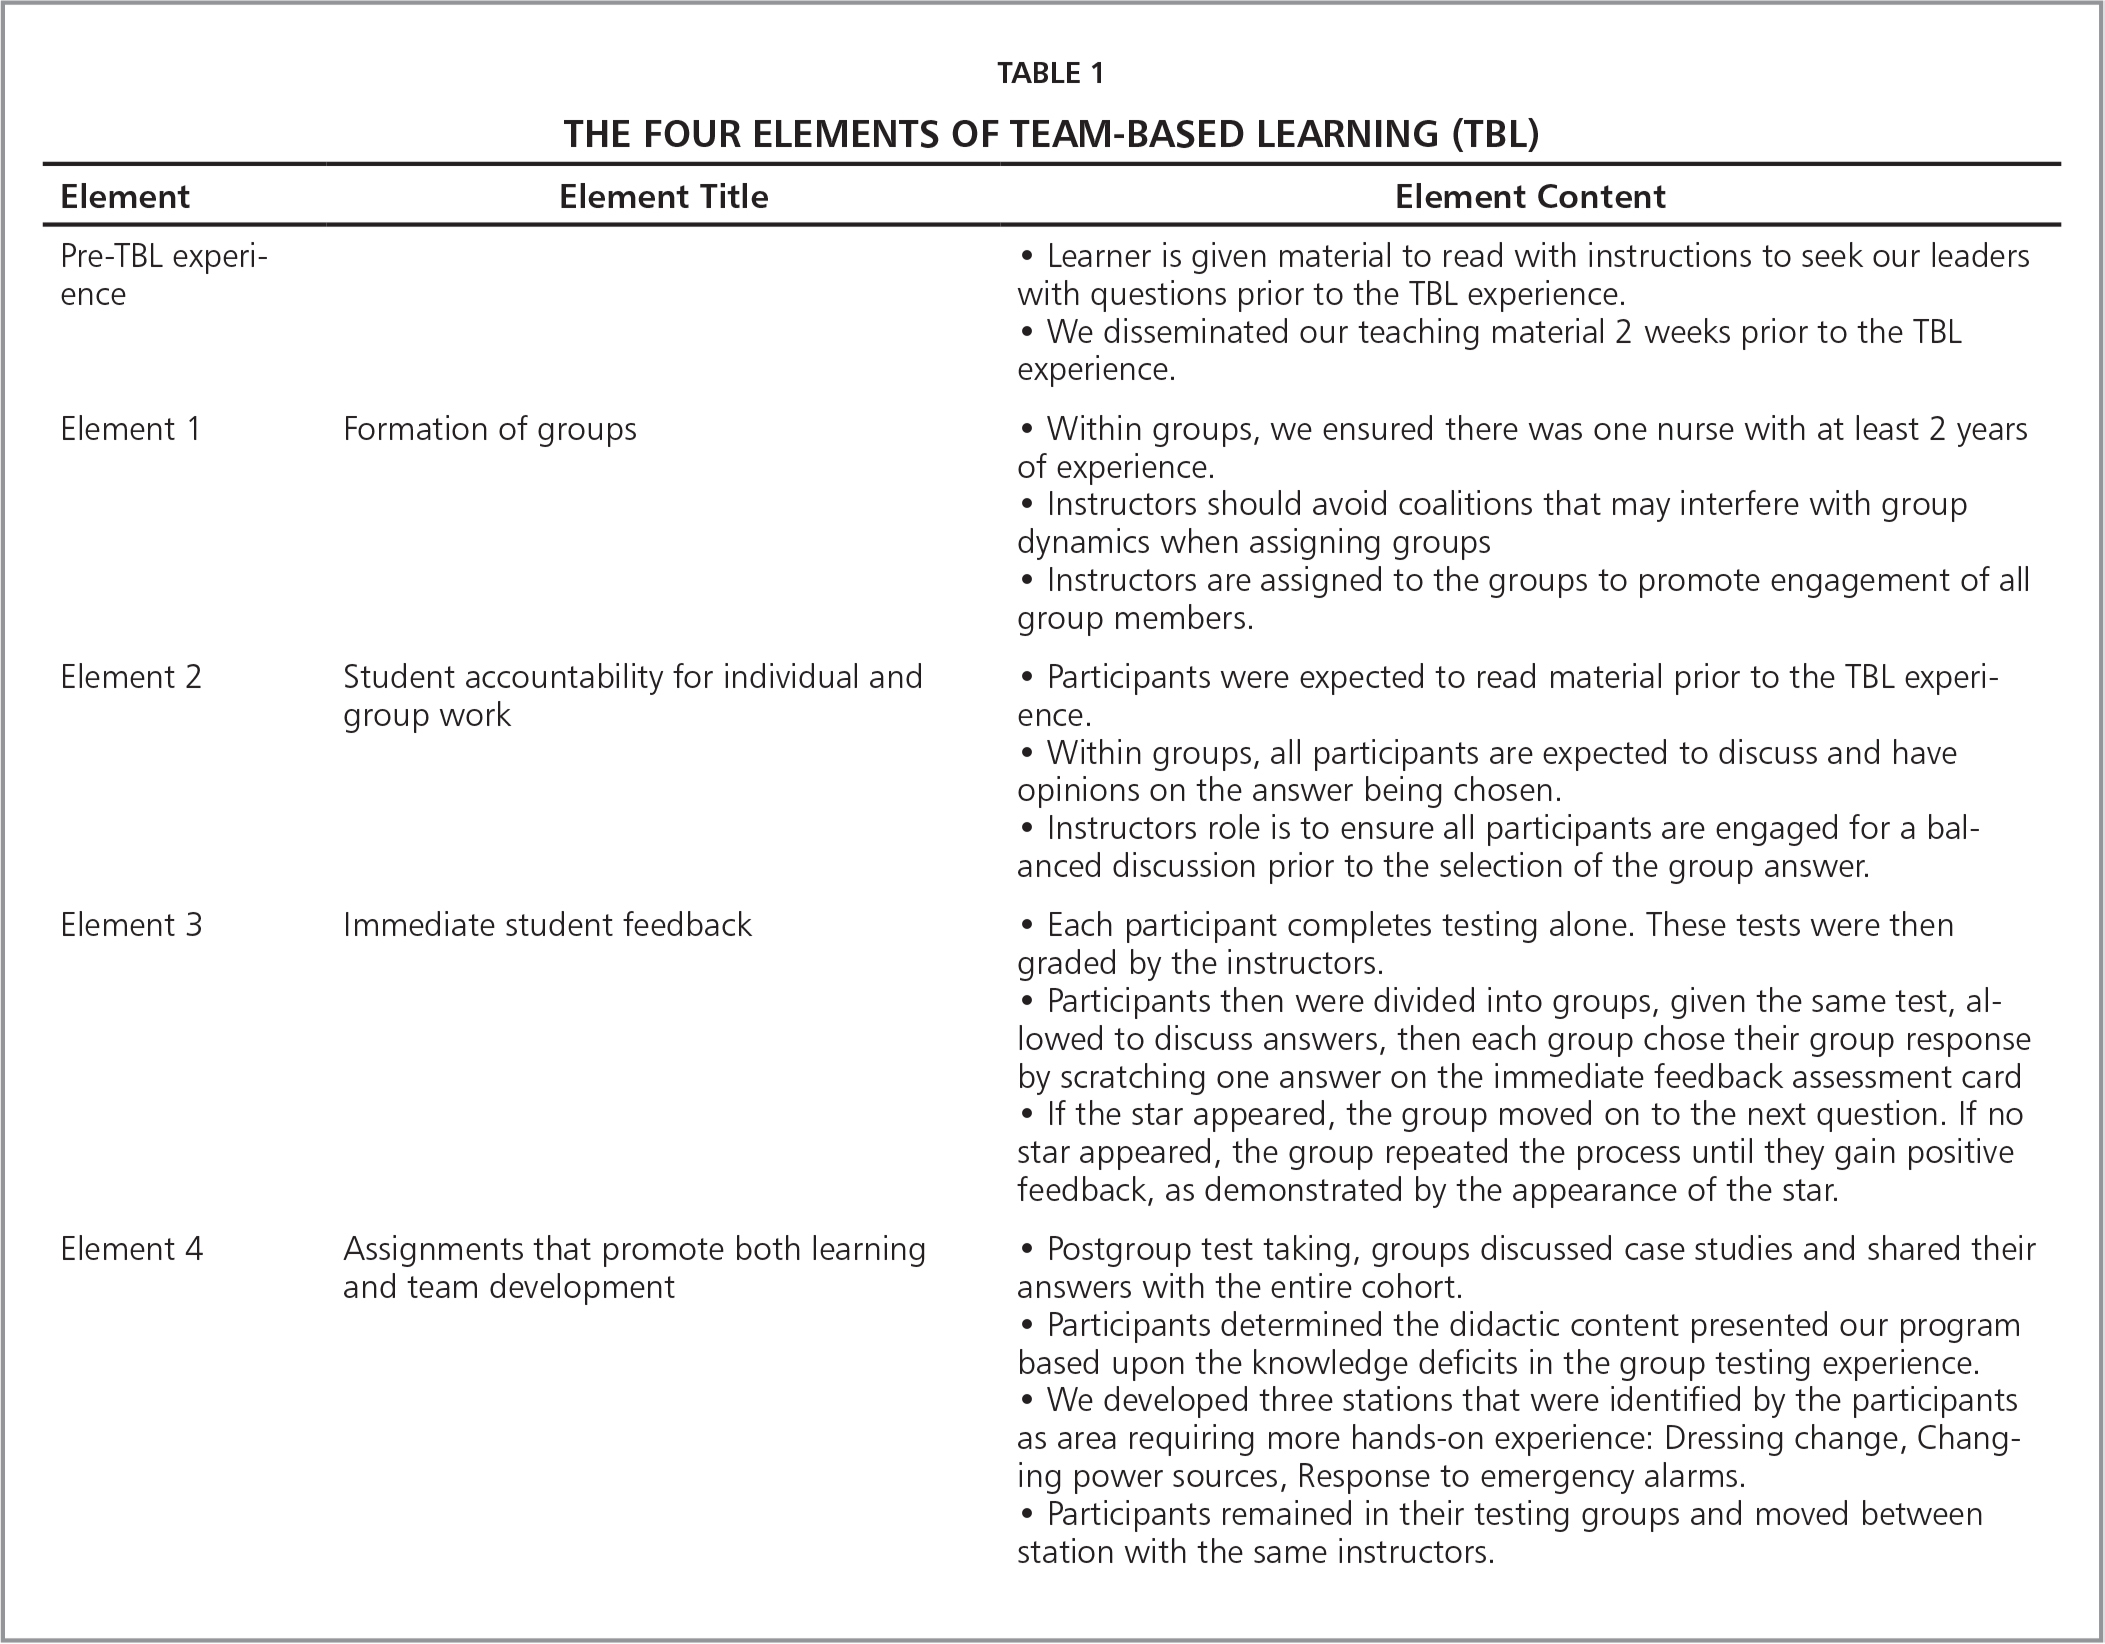 The Four Elements of Team-Based Learning (TBL)